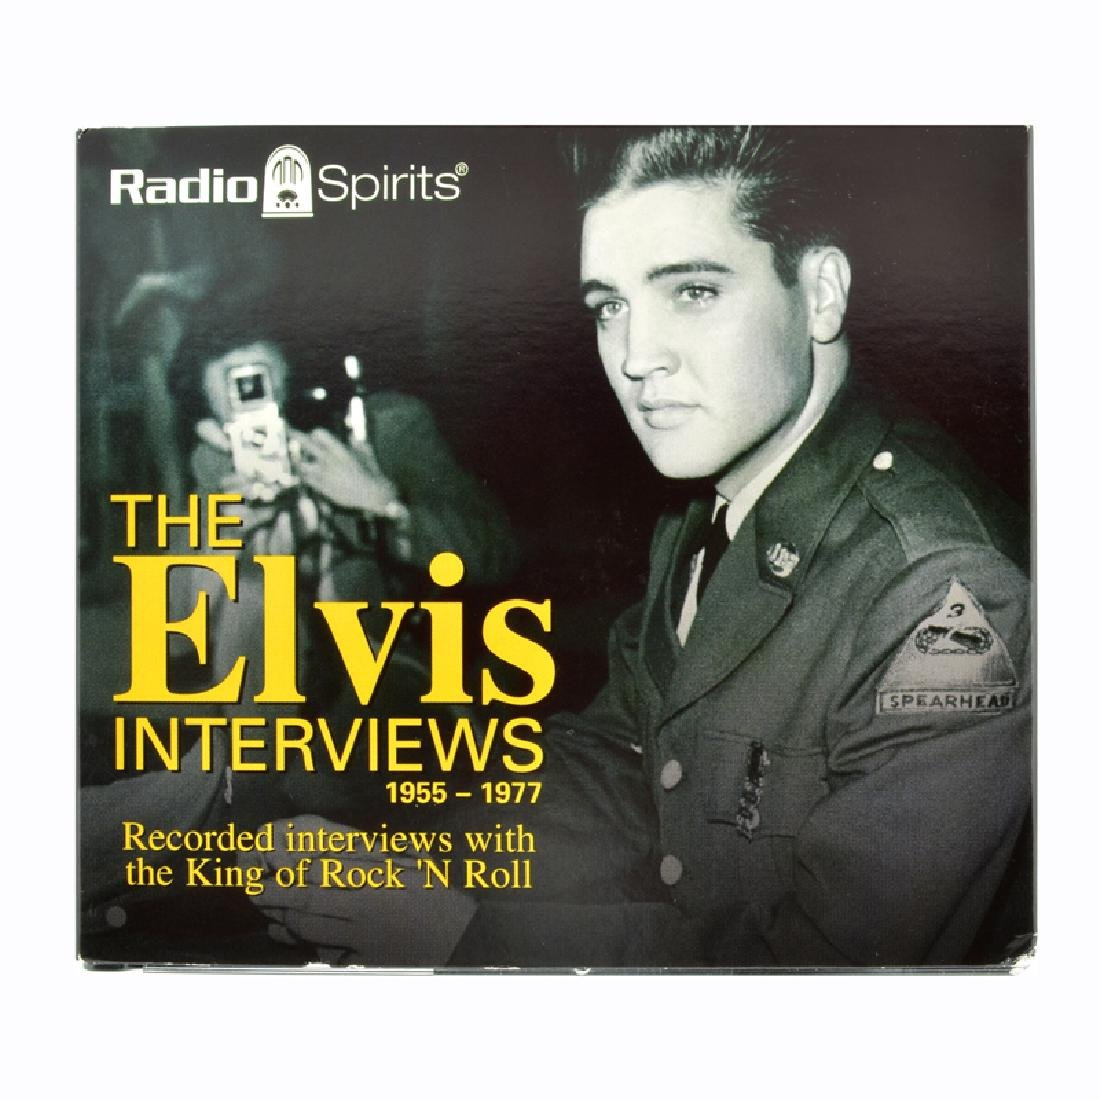 Elvis Presley 5 CD's The Elvis Interviews